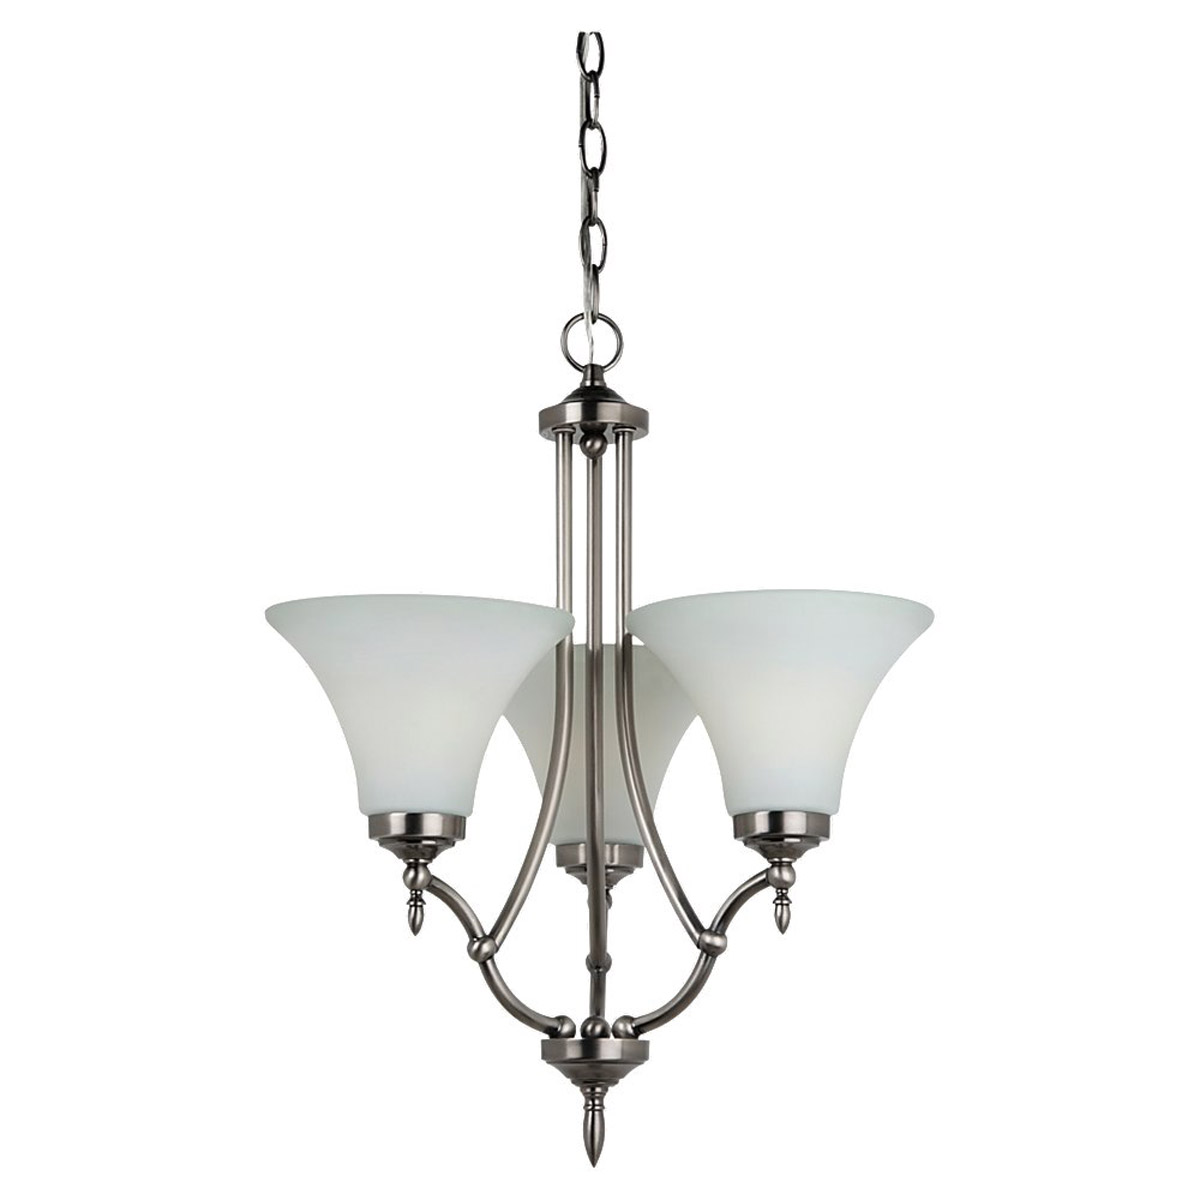 Sea Gull Lighting Montreal 3 Light Chandelier in Antique Brushed Nickel 31180BLE-965